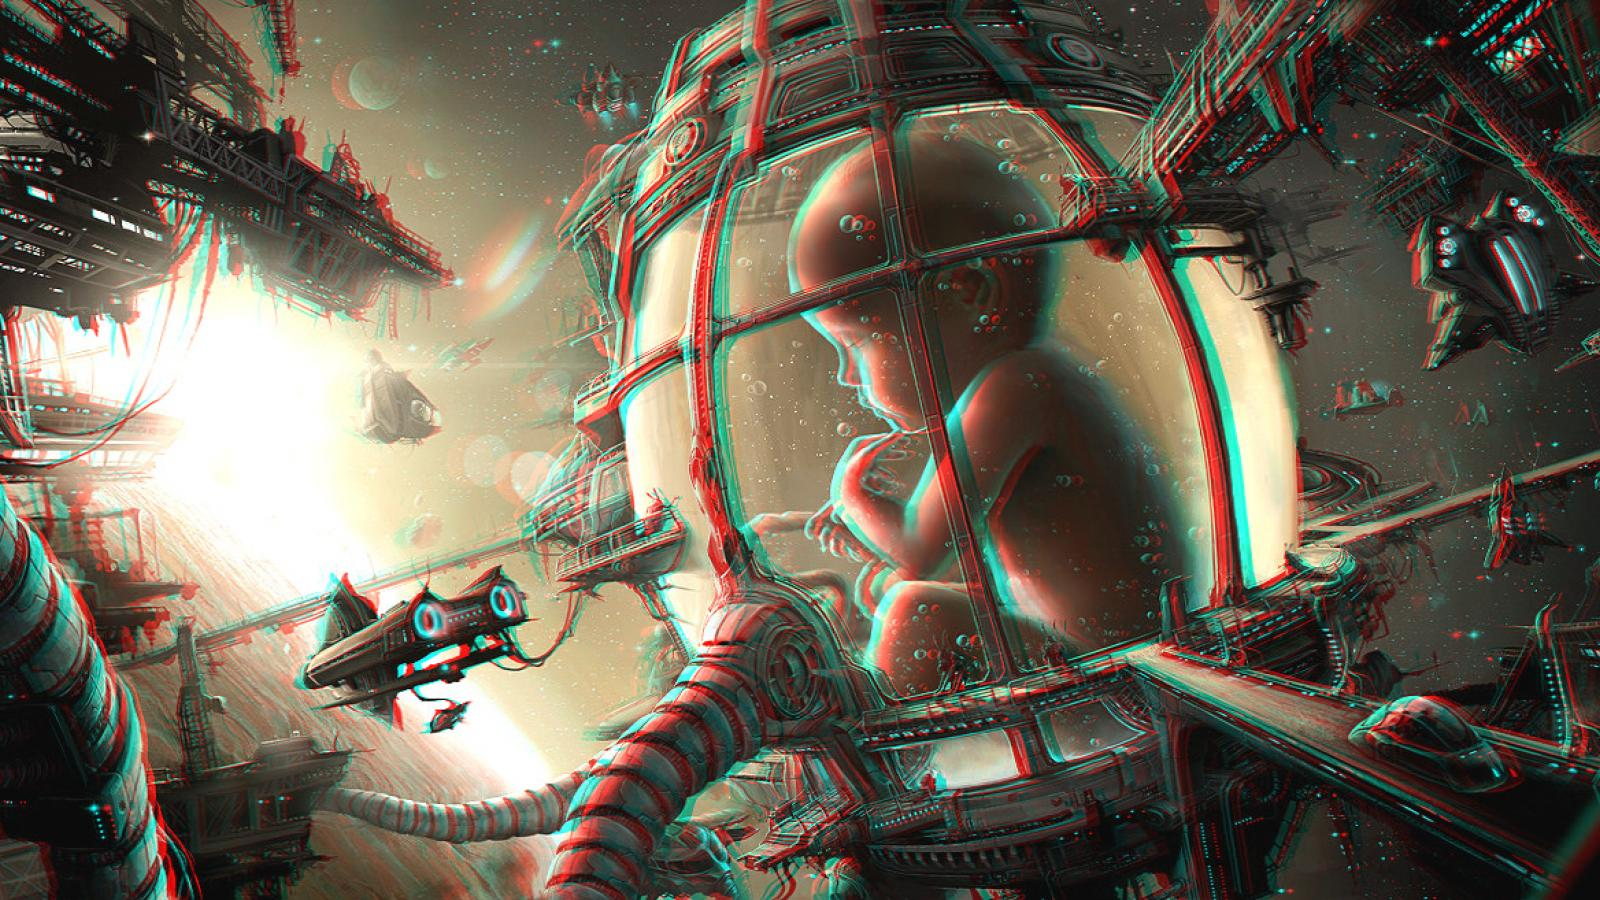 Anaglyph 3D Inspiration by Mark Ramsey